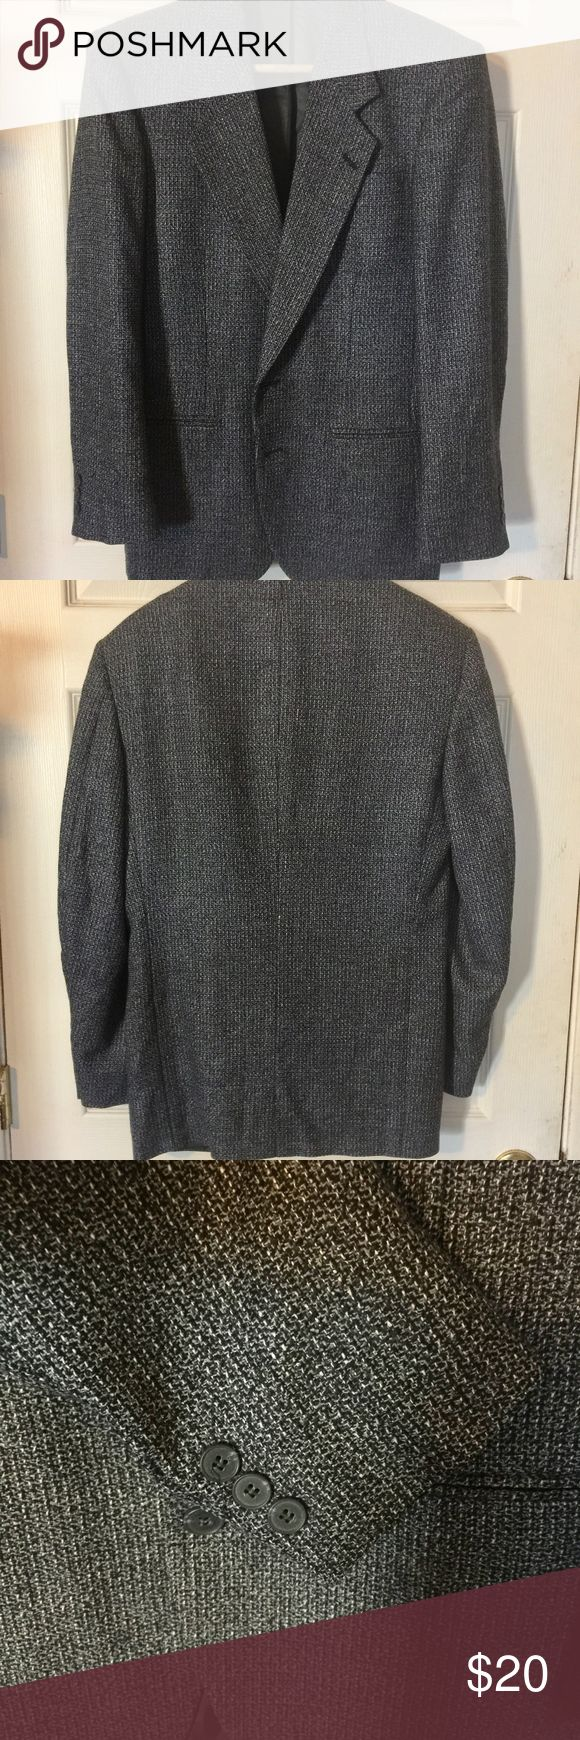 """Nino Cerruti Wool Sports Coat Blazer Jacket Nino Cerruti Rue Royale Men's Gray/Black Wool Sports Coat Blazer Jacket in excellent used condition.  Please note there is no tag stating size so check measurements for fit.    Shoulder (Shoulder to Shoulder) 18.5"""" Pit to Pit(Across Chest):20.5"""" Sleeve(Top of Shoulder to Cuff):24"""" Length(Top of Collar to Hem): 31"""" Nino Cerruti Suits & Blazers Sport Coats & Blazers"""